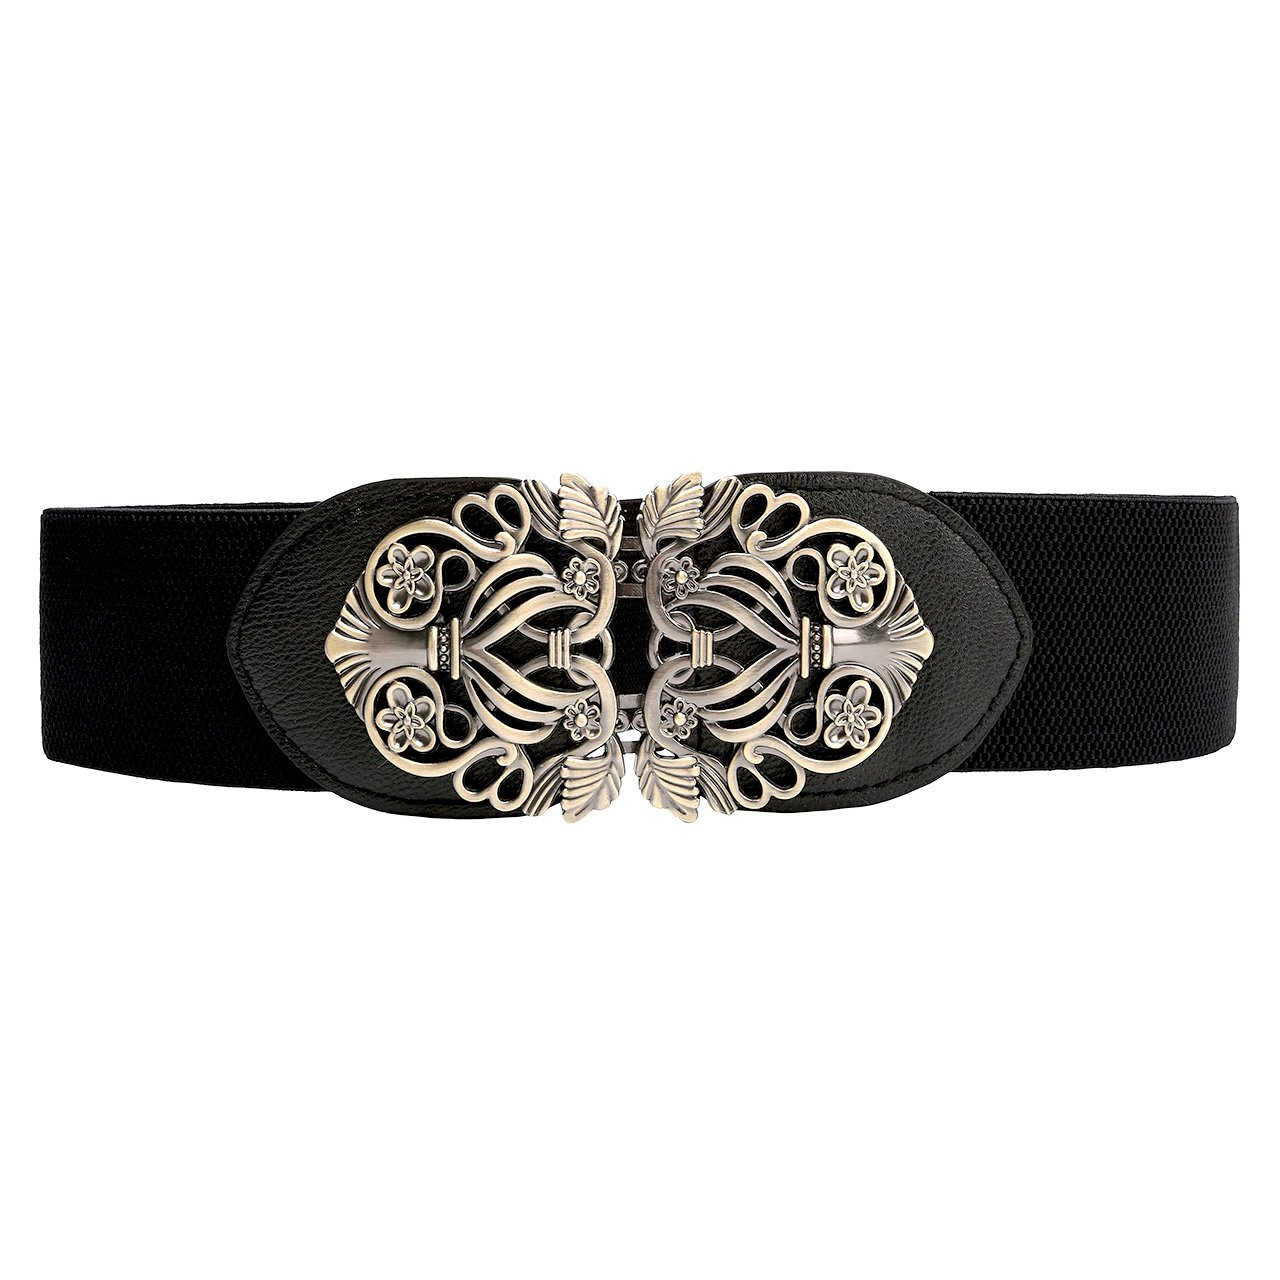 CHIC DIARY Women's Vintage Engraving Elastic Stretch Cinch Wide Waist Belt QQUK00347